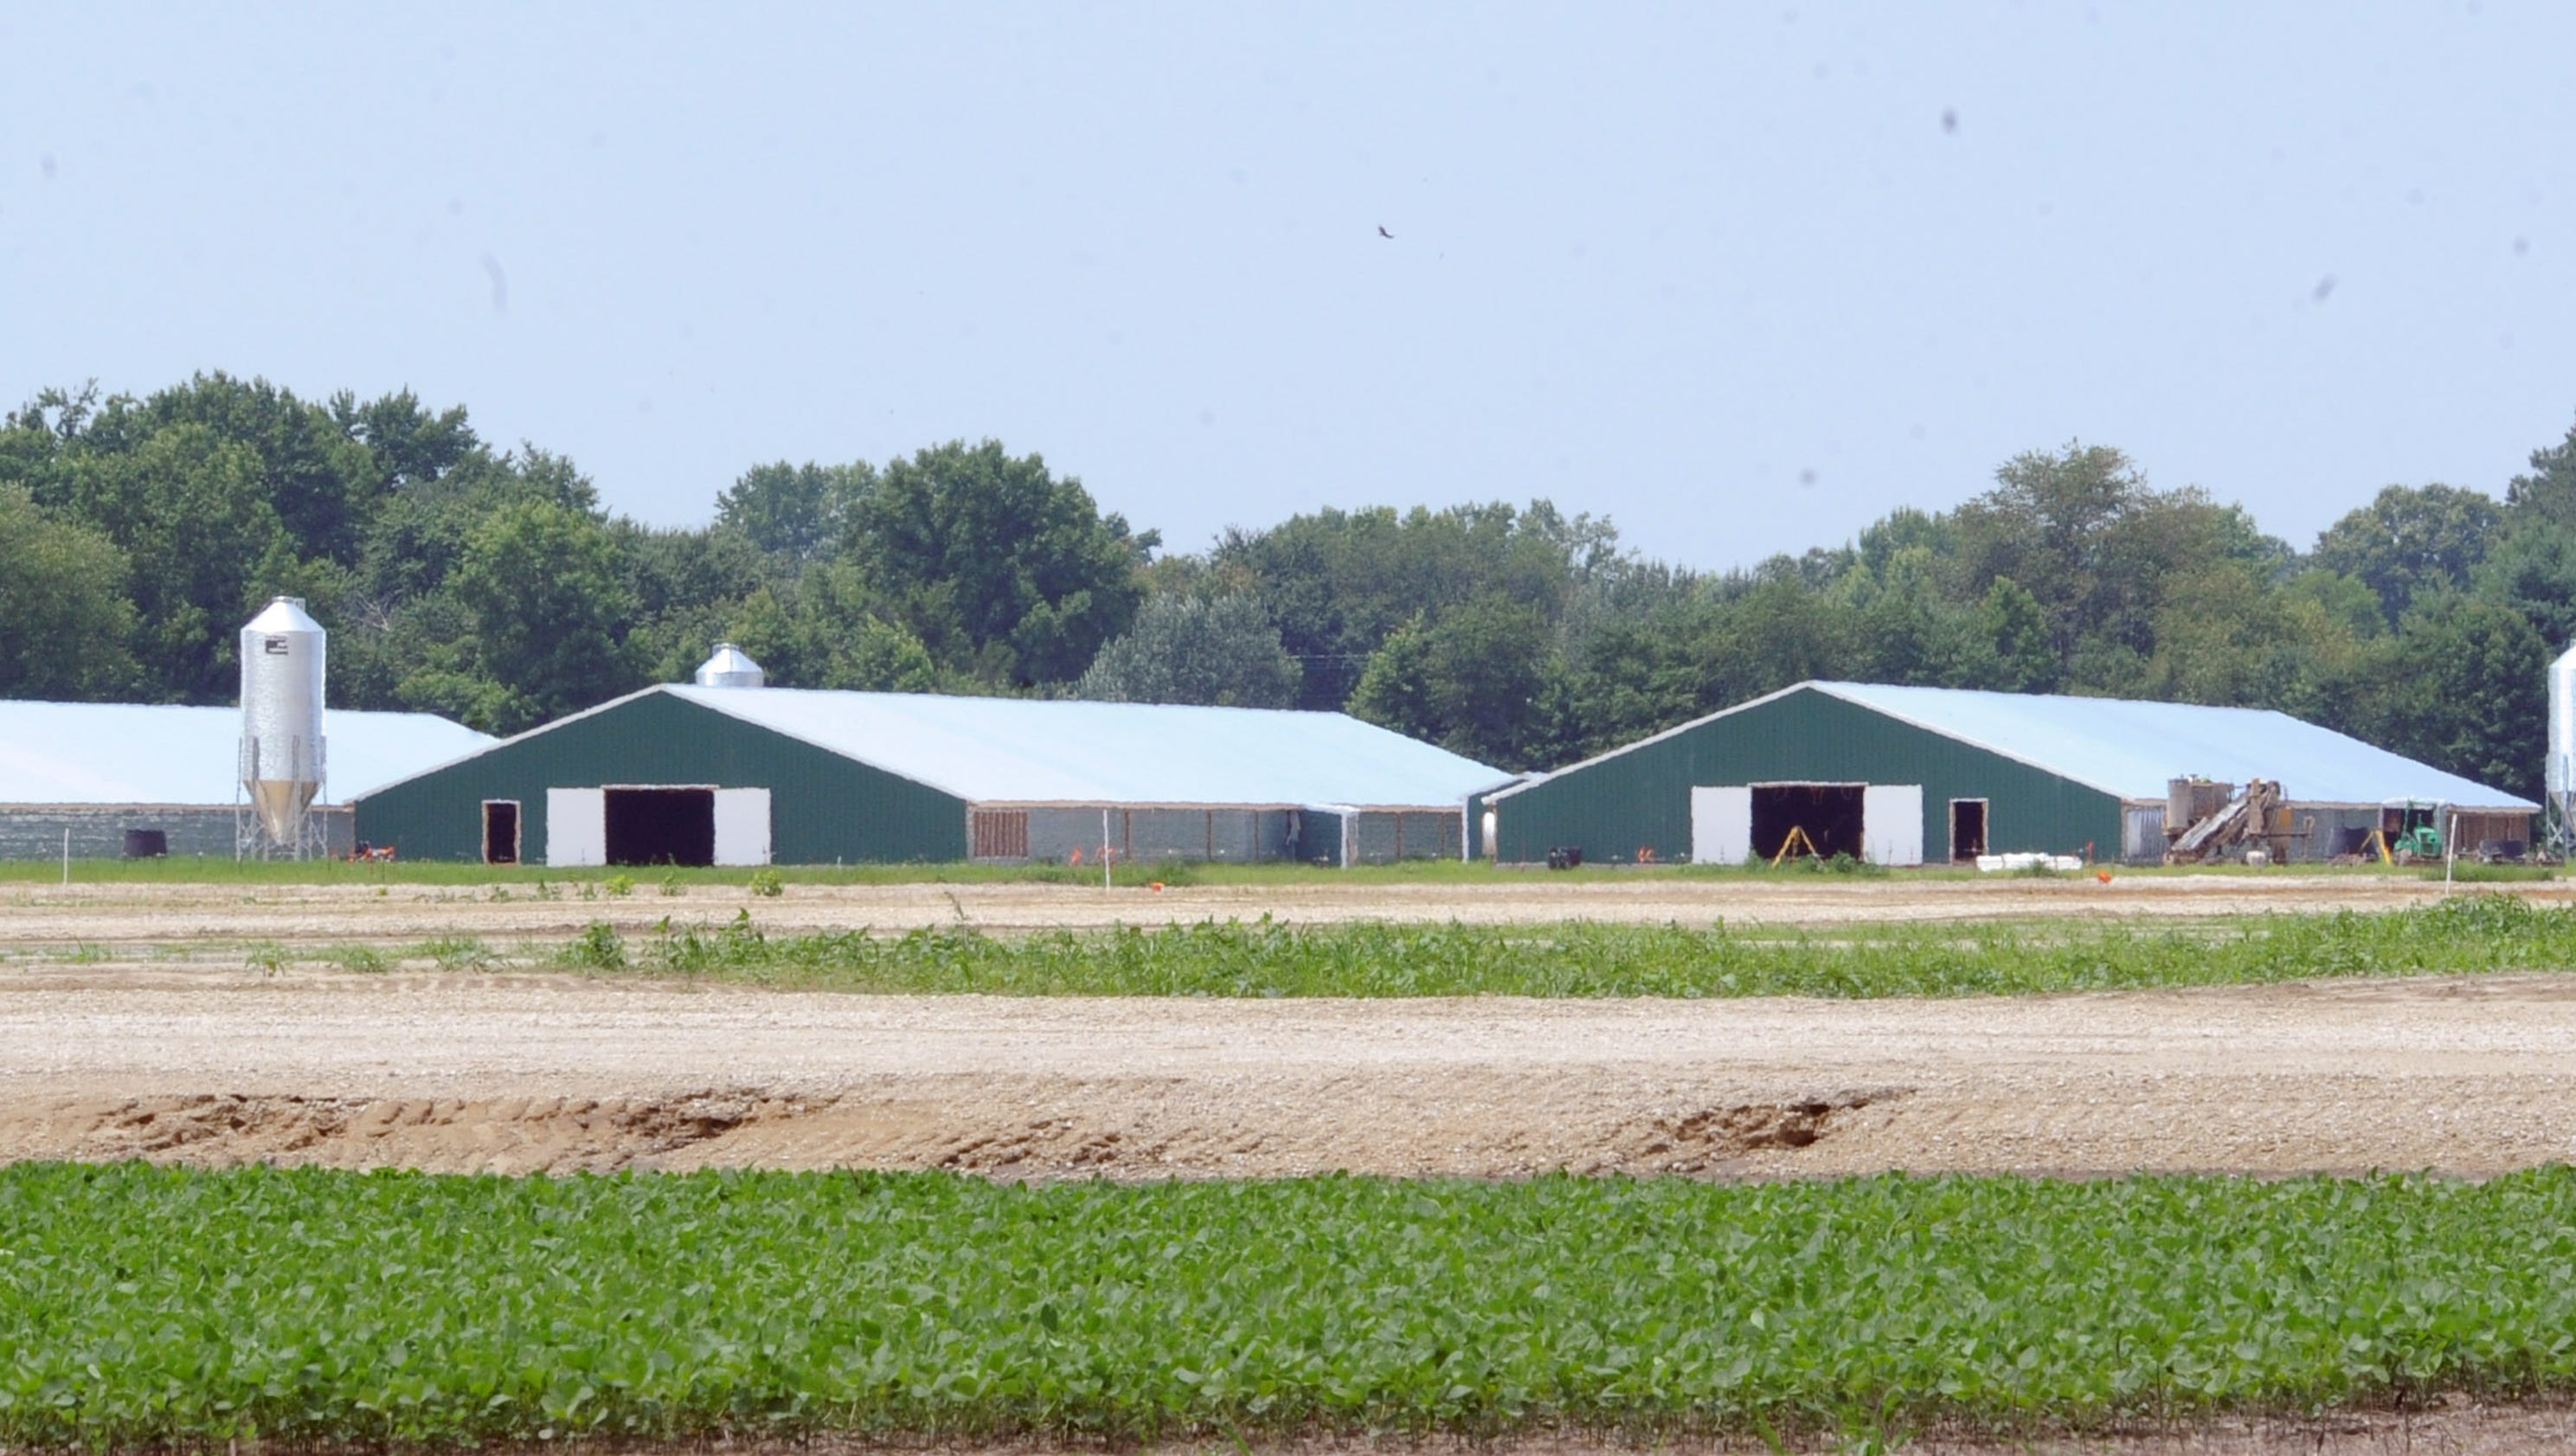 Building Commercial Poultry Houses